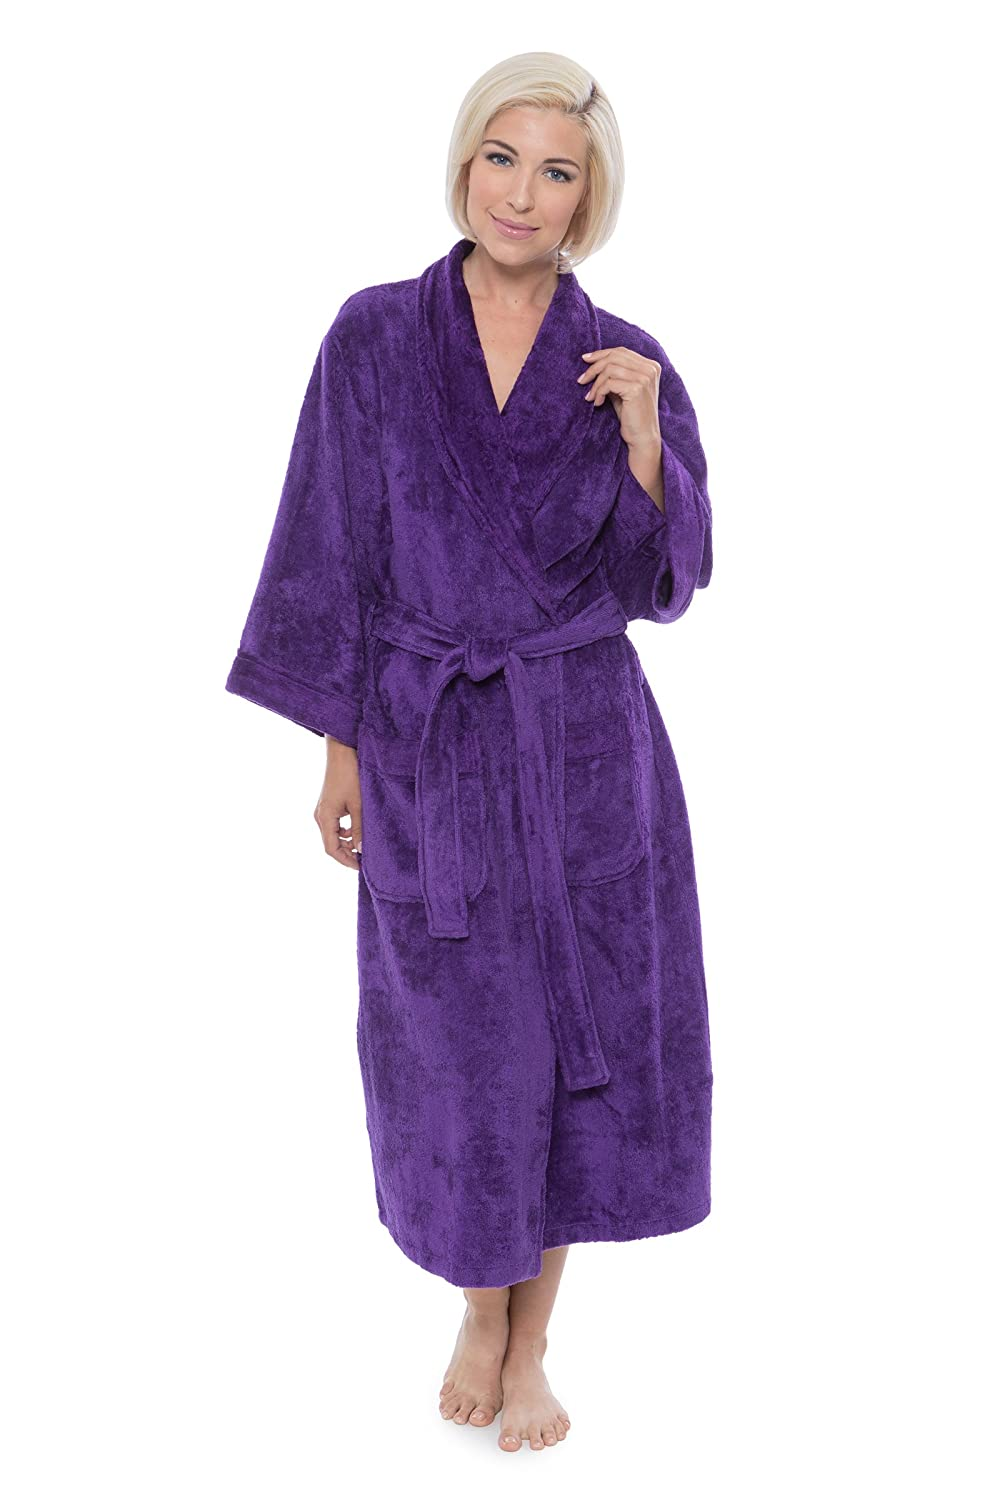 Women's Terry Cloth Bath Robe - Luxury Comfy Robes by Texere (Sitkimono)